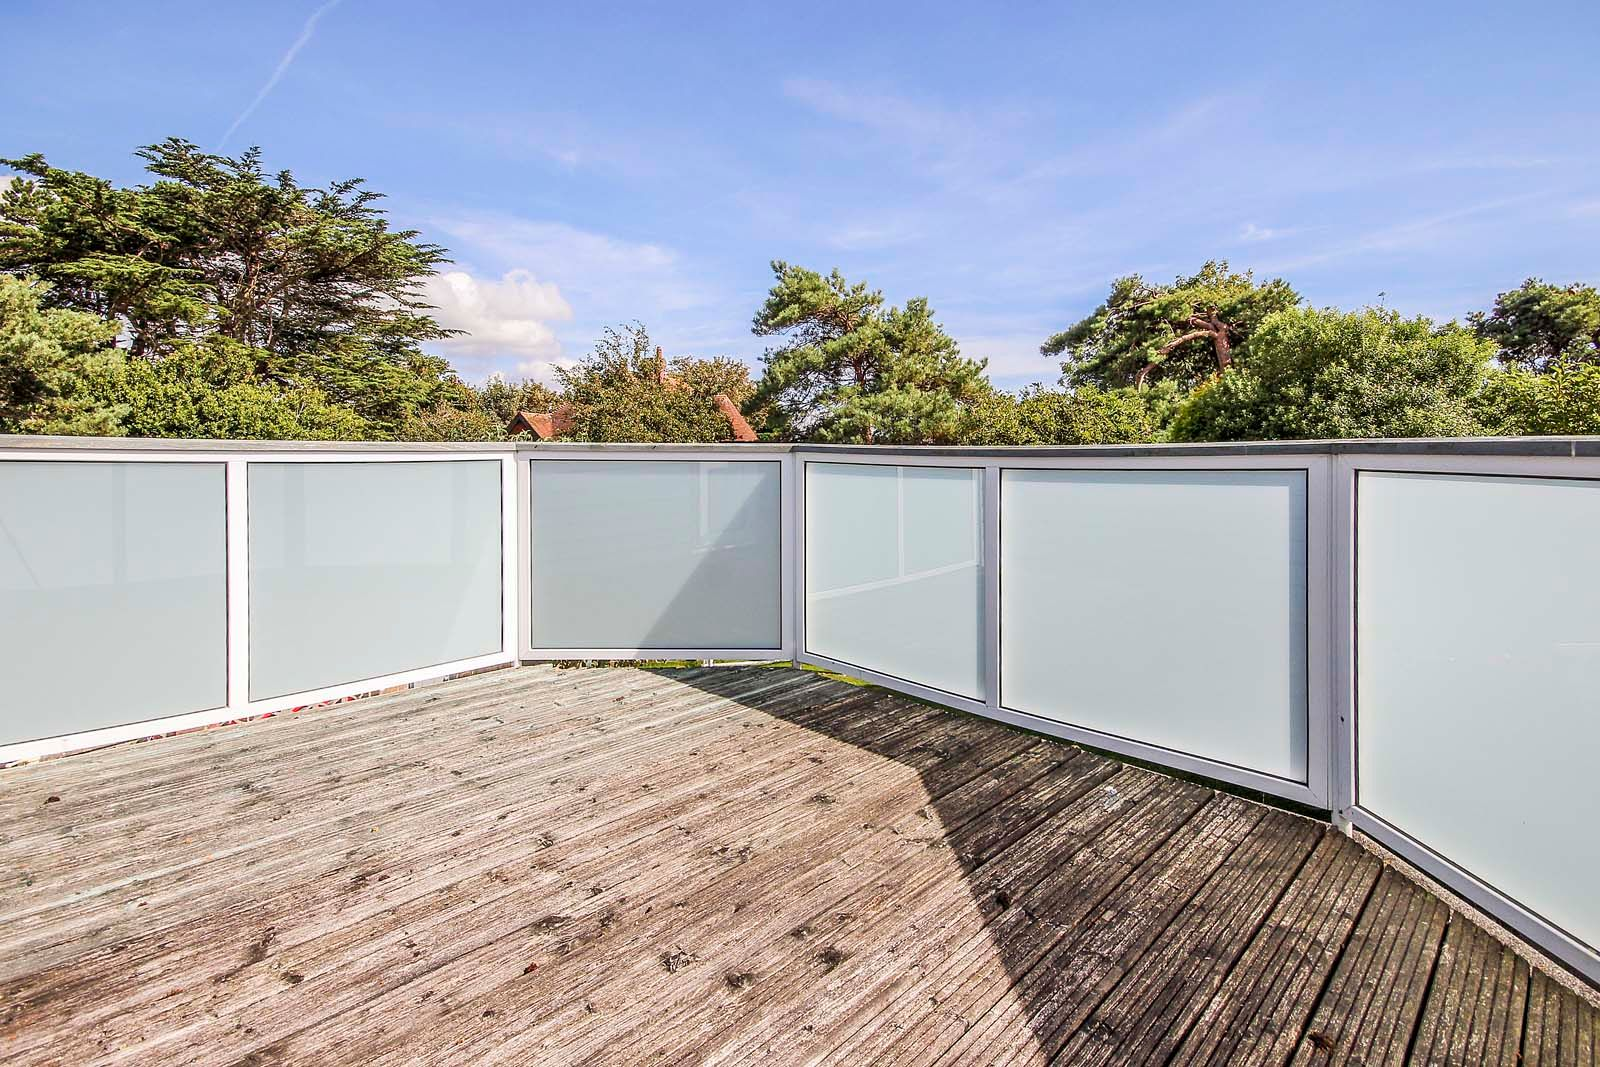 4 bed House for sale in Rustington - Balcony (Property Image 19)